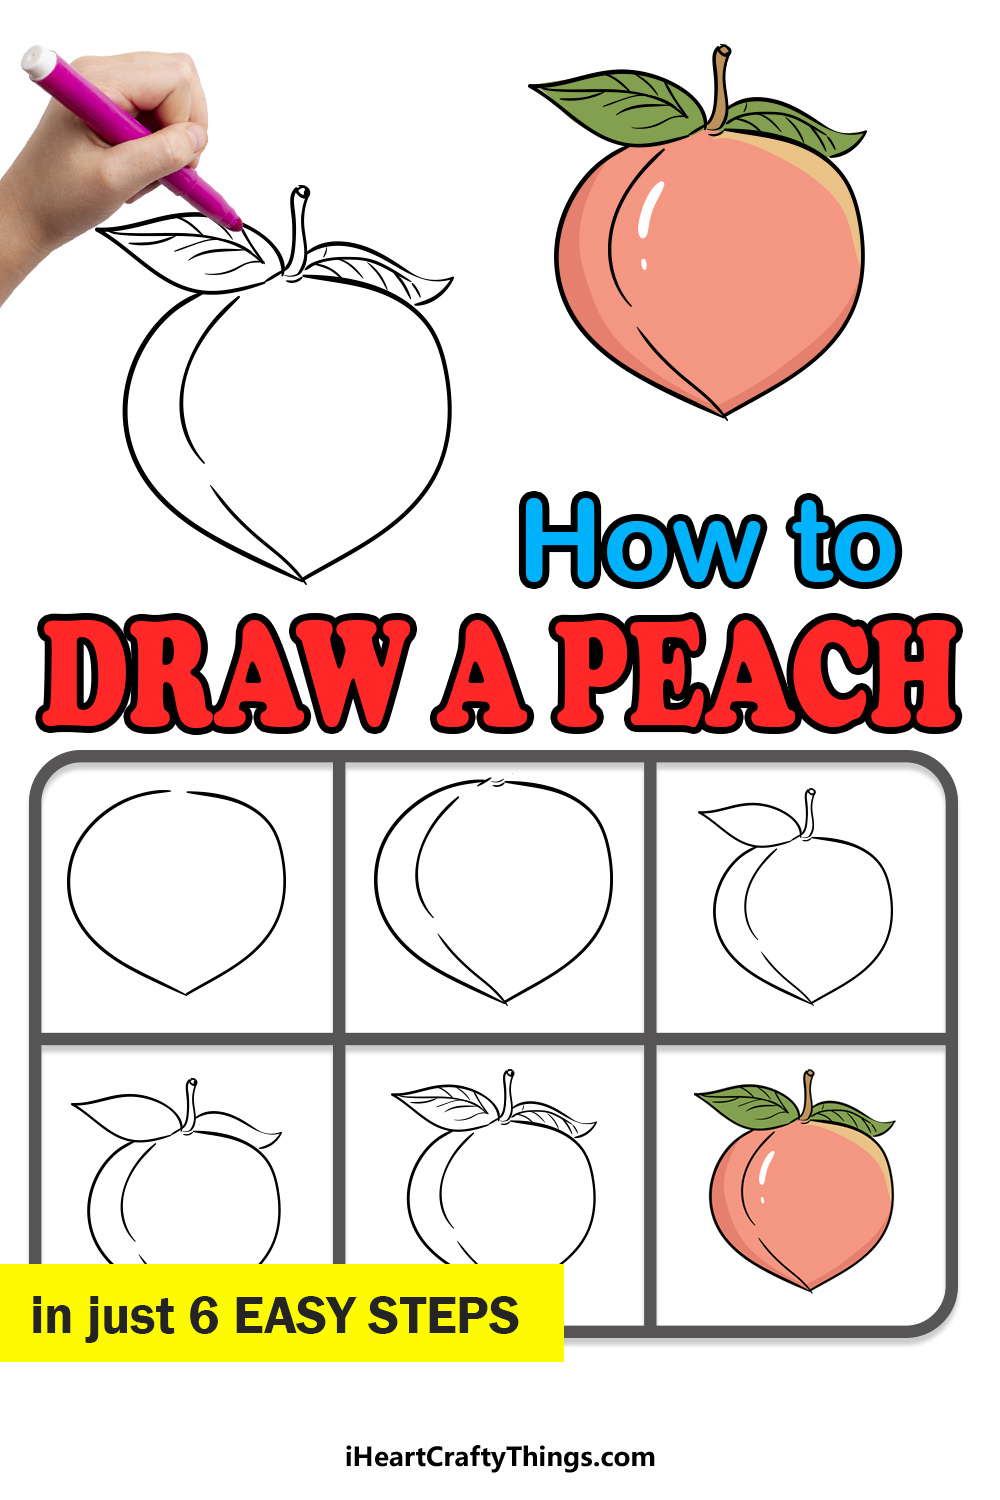 how to draw a peach in 6 easy steps